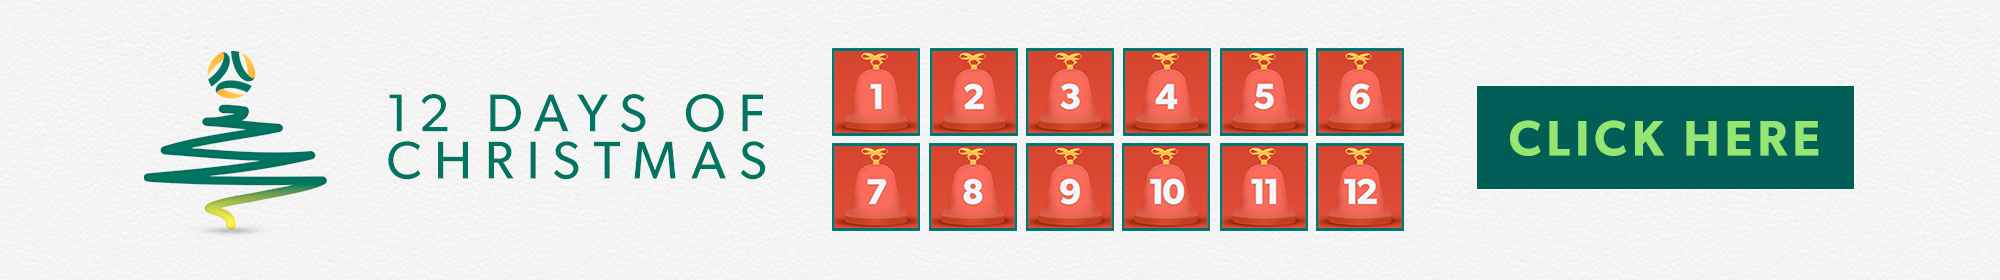 12 Days of Christmas Thin Banner